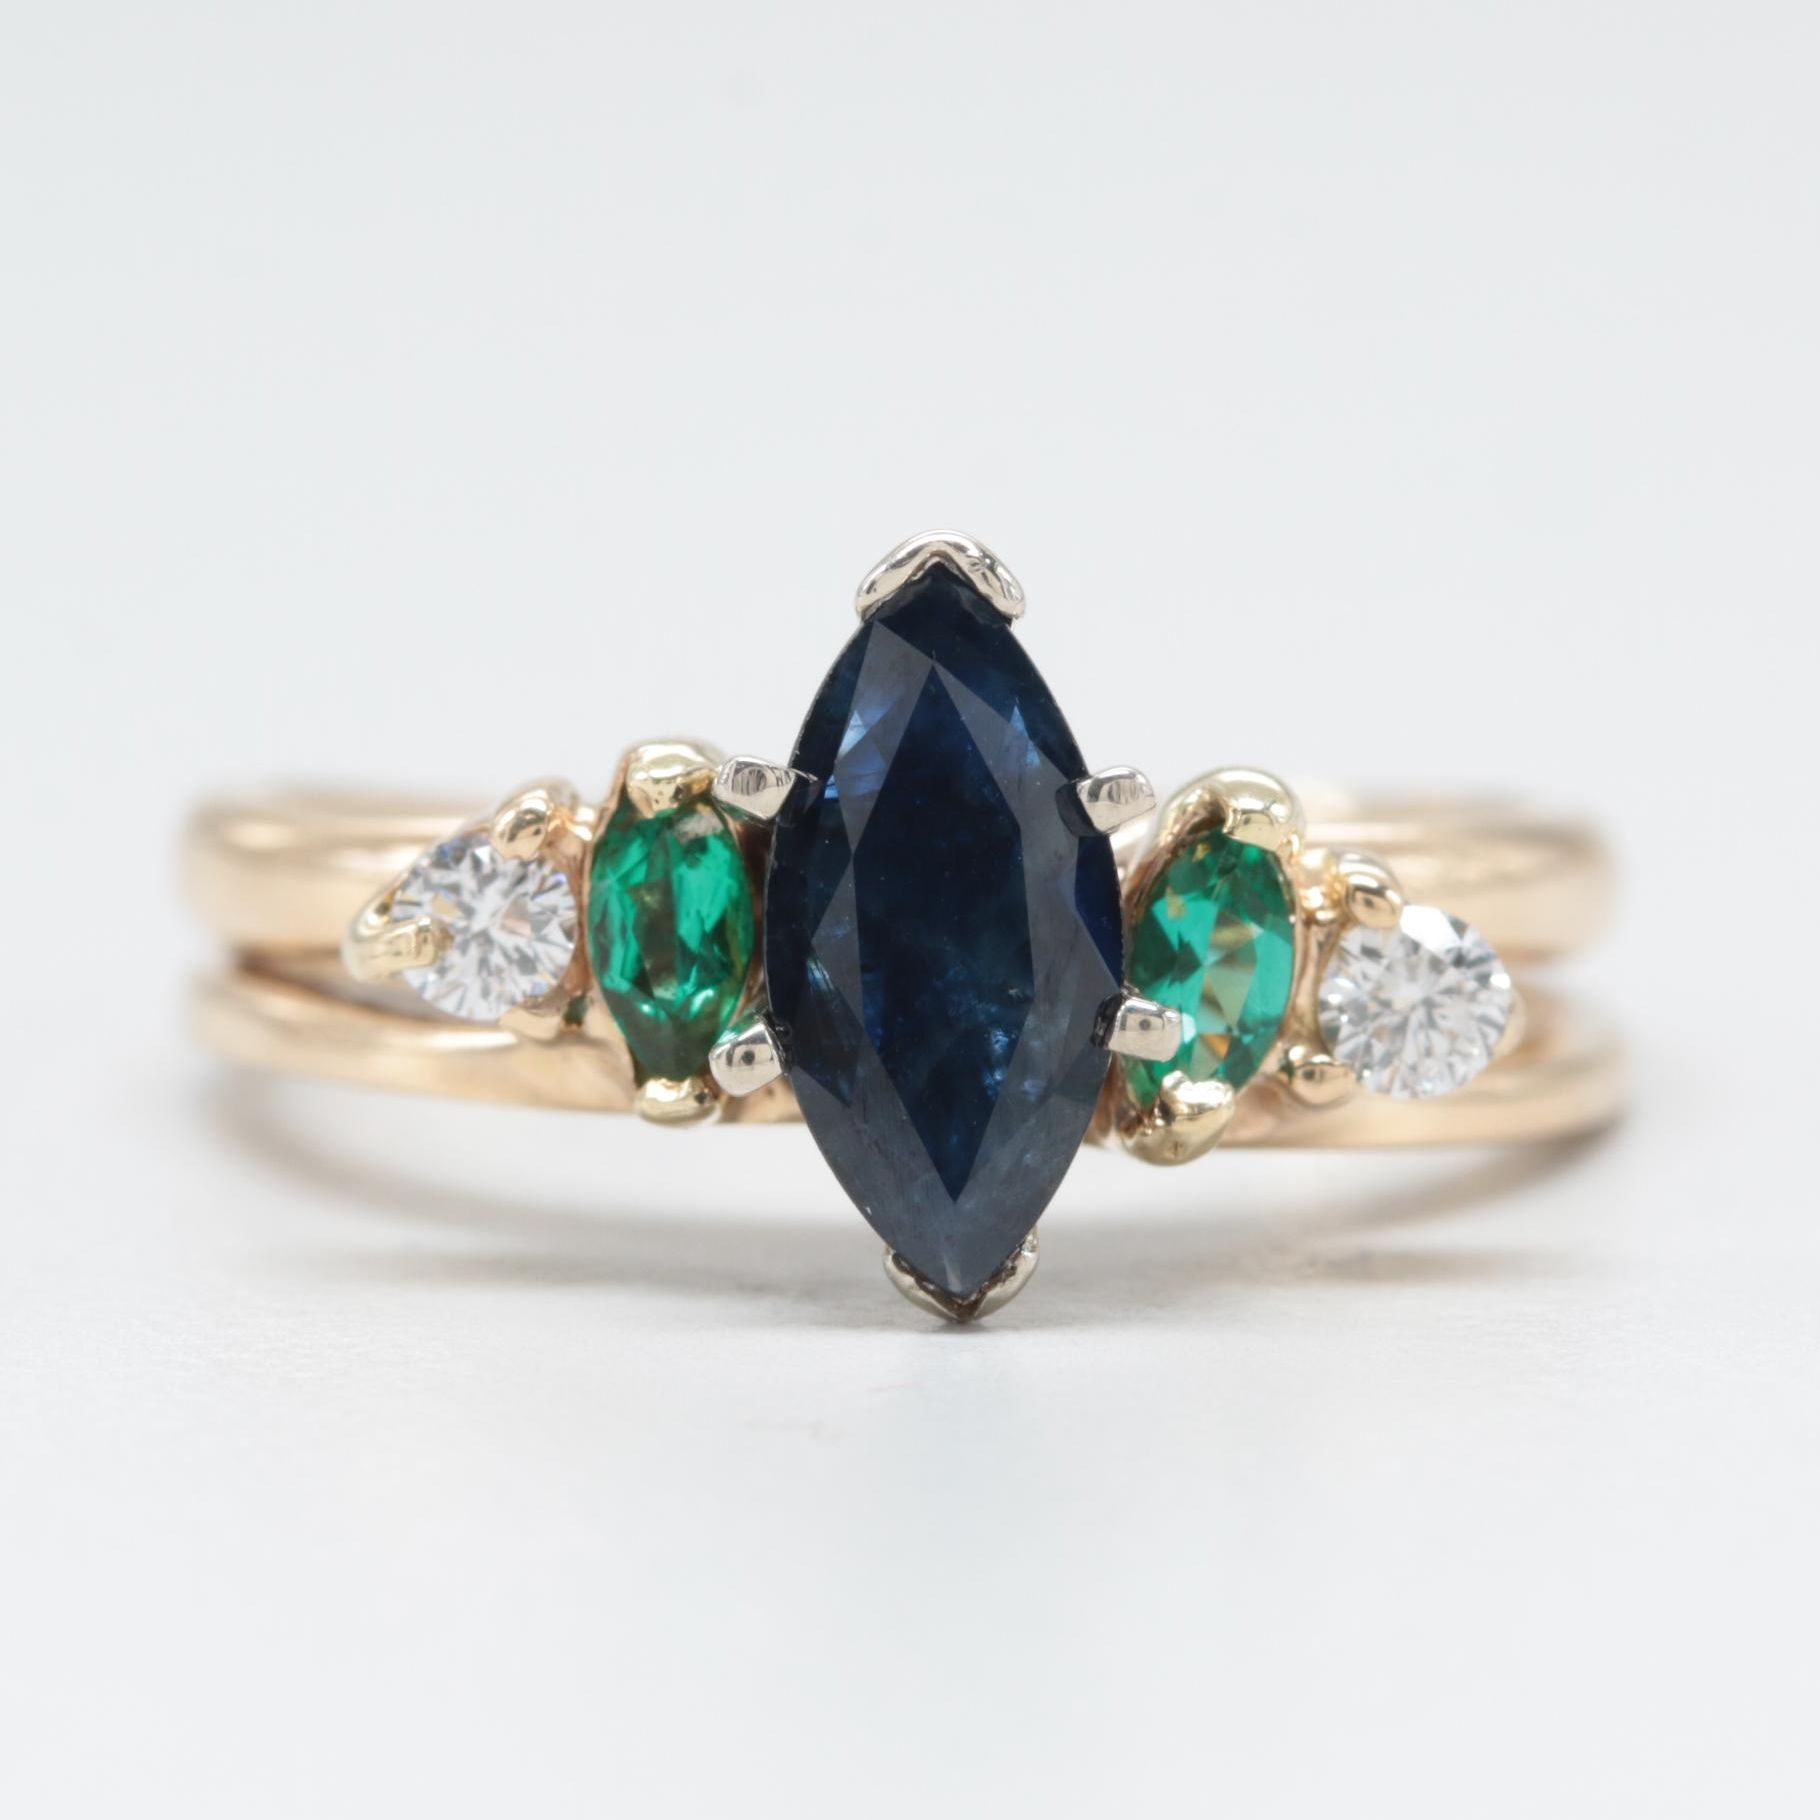 14K Yellow Gold Sapphire, Synthetic Emerald, and Diamond Ring